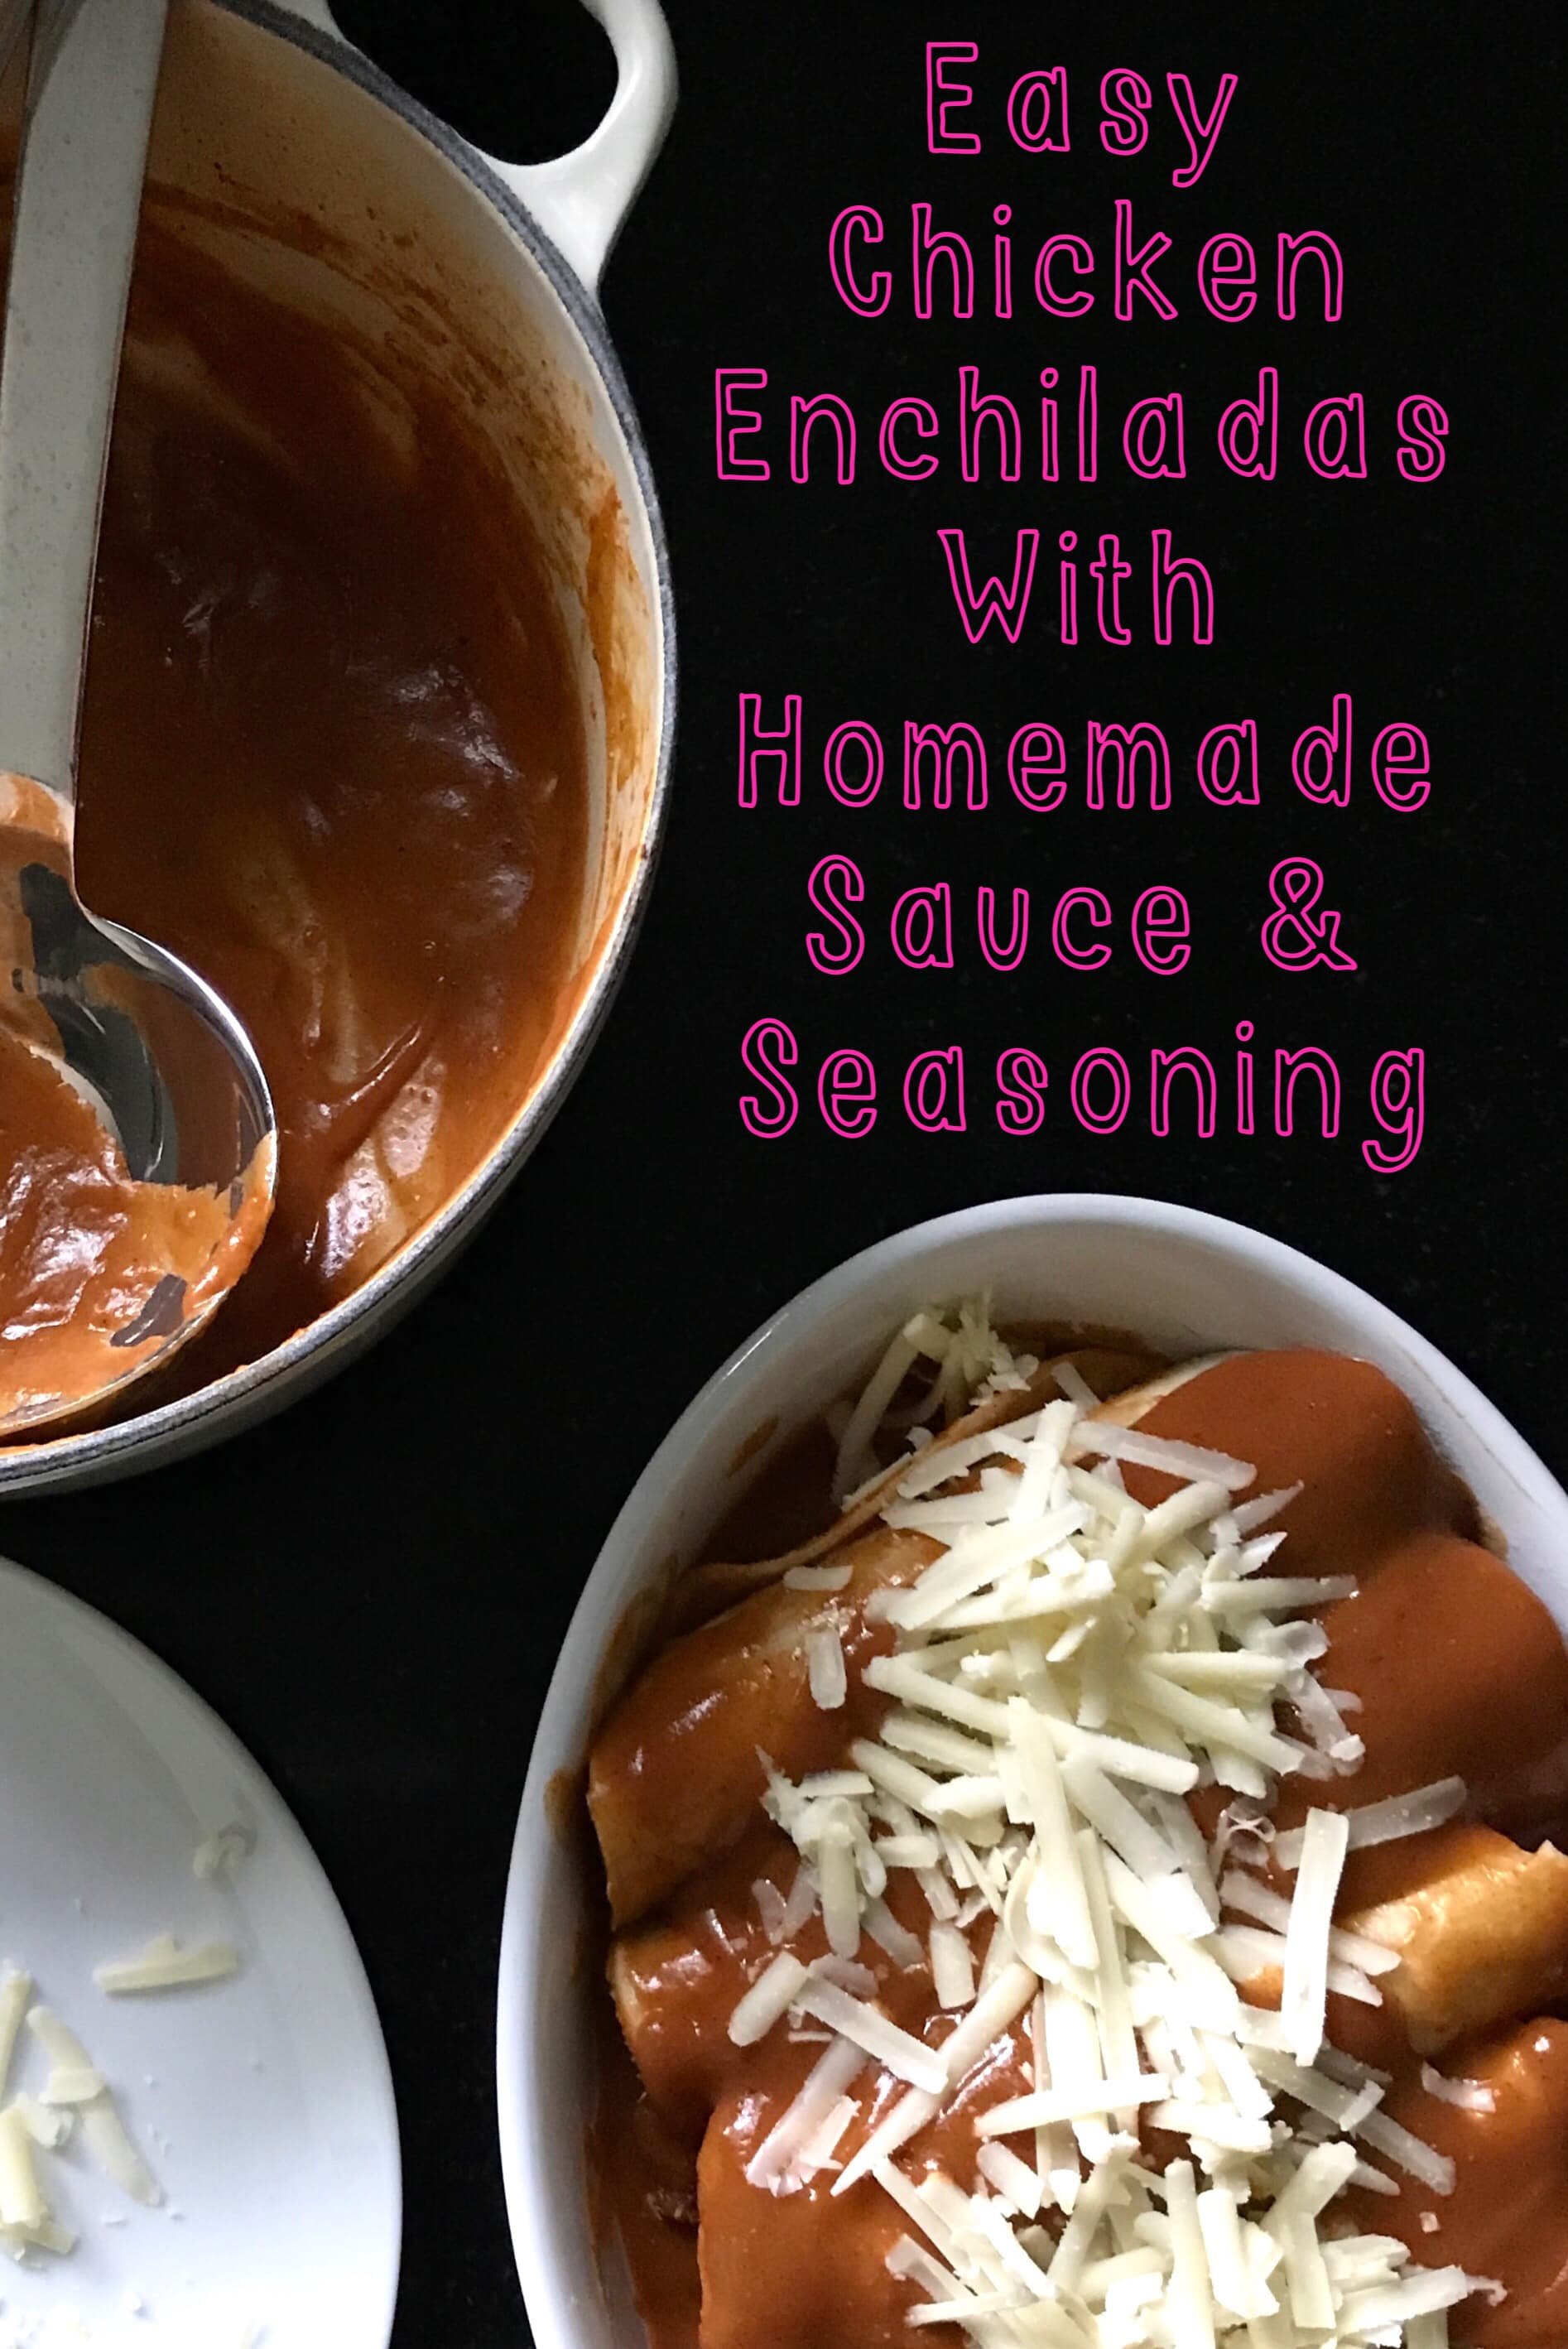 Easy Chicken Enchiladas with homemade sauce & seasoning